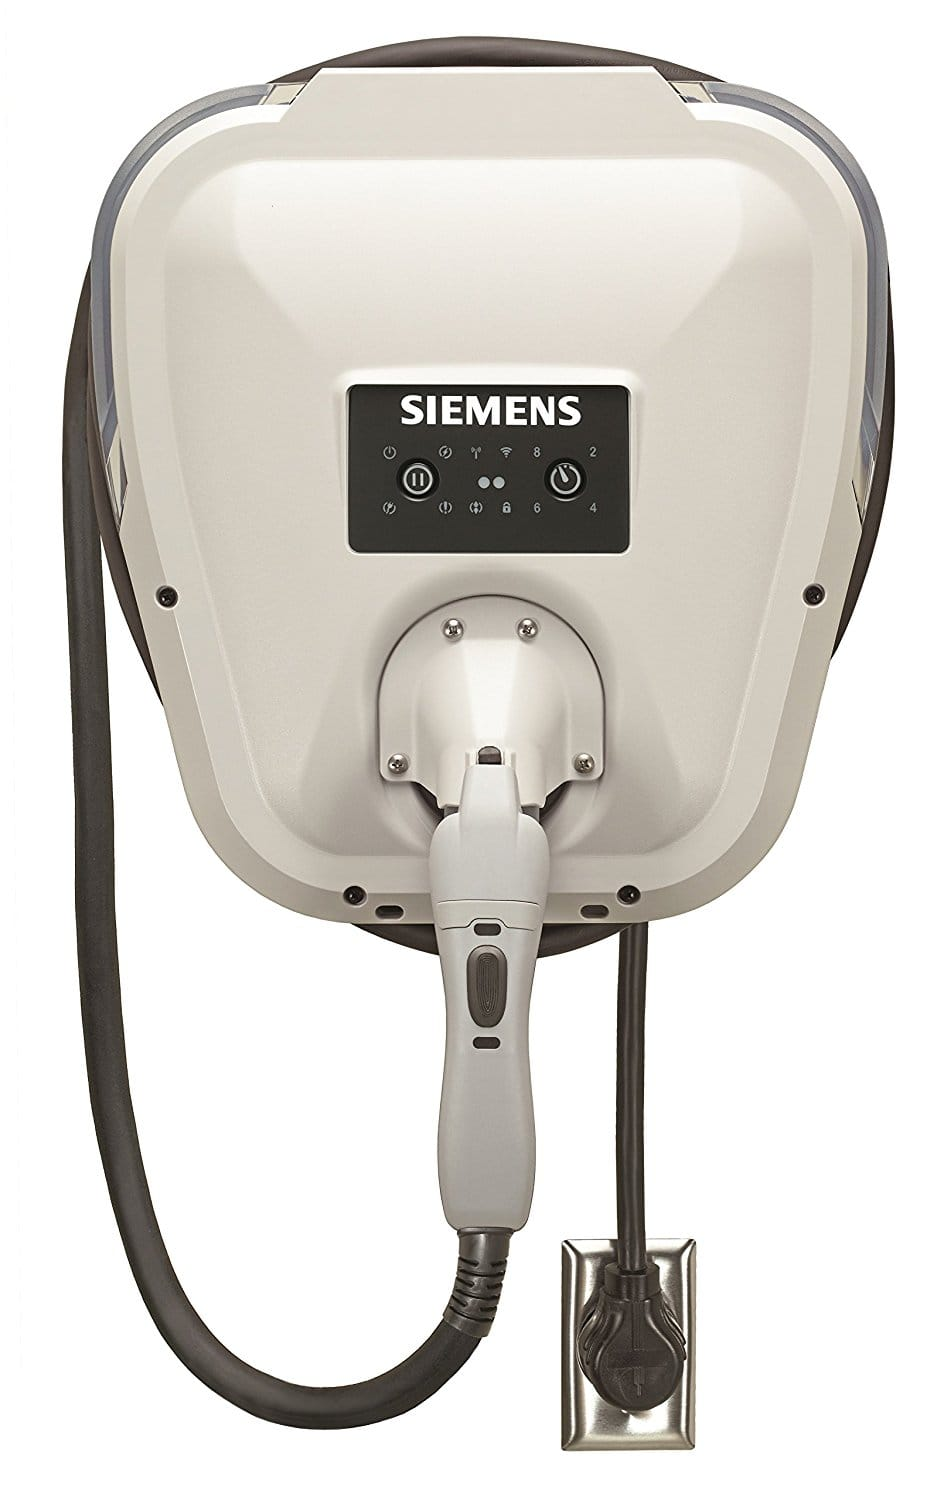 Siemens  VersiCharge LVL 2 Universal Electric Vehicle Charger. $359.99 + FS